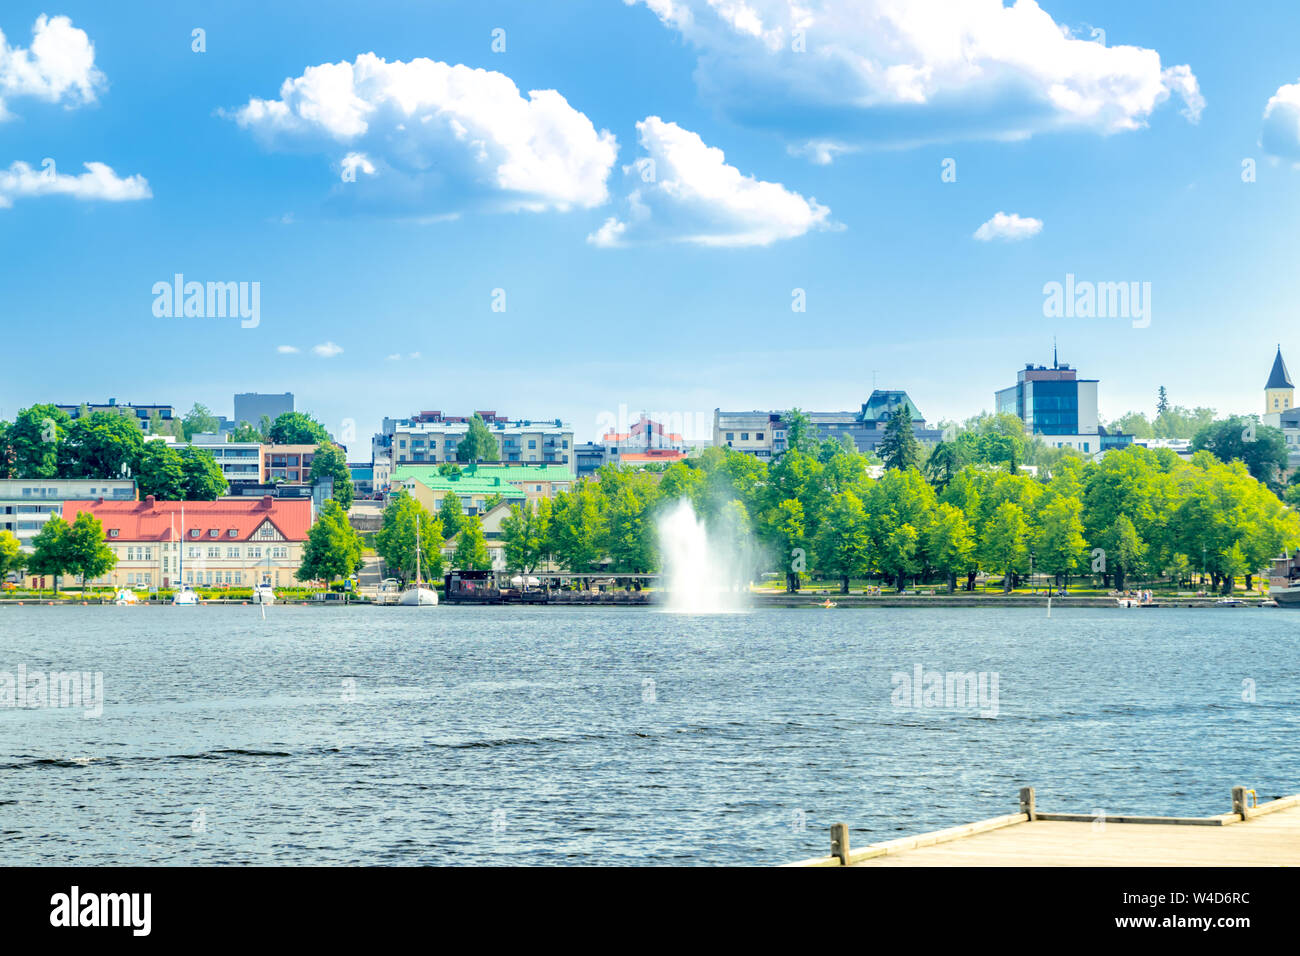 Lappeenranta, Finland - June 20, 2019: Summer landscape with fountain and boats in Lappeenranta harbor on Saimaa lake. Stock Photo